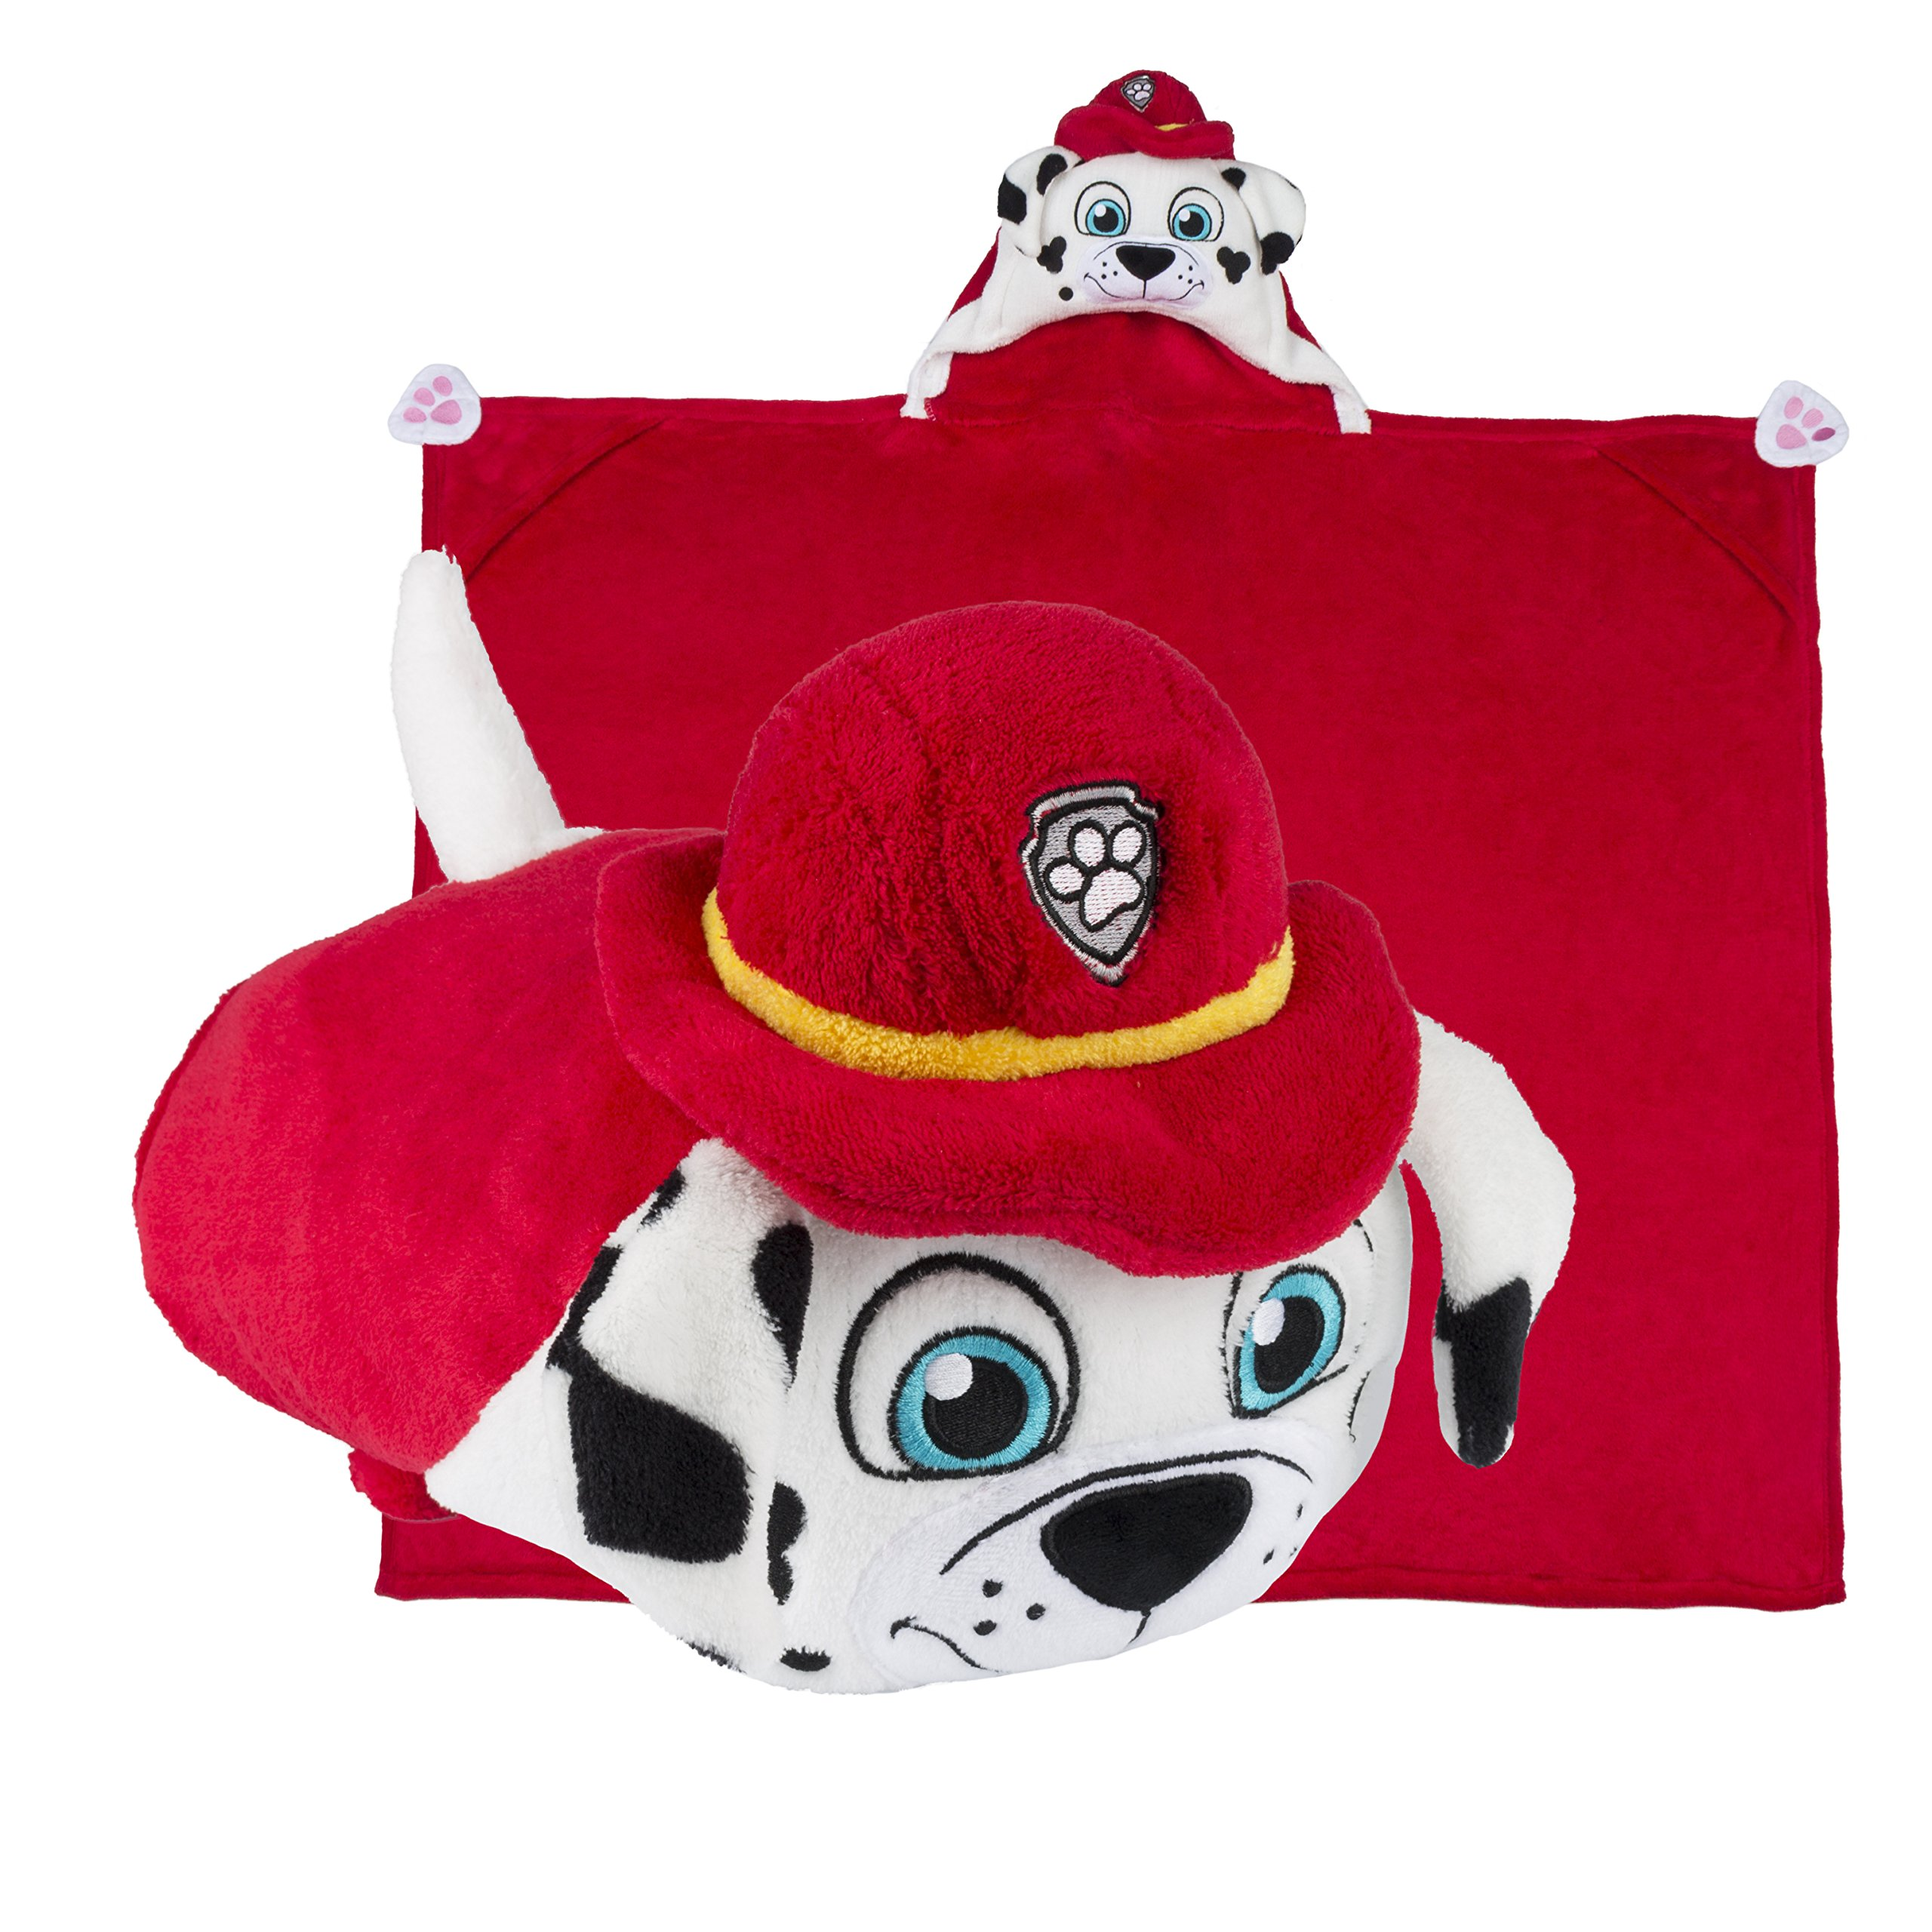 Comfy Critters Stuffed Animal Blanket - PAW Patrol Marshall - Kids Huggable Pillow and Blanket Perfect for Pretend Play, Travel, nap time. by Comfy Critters